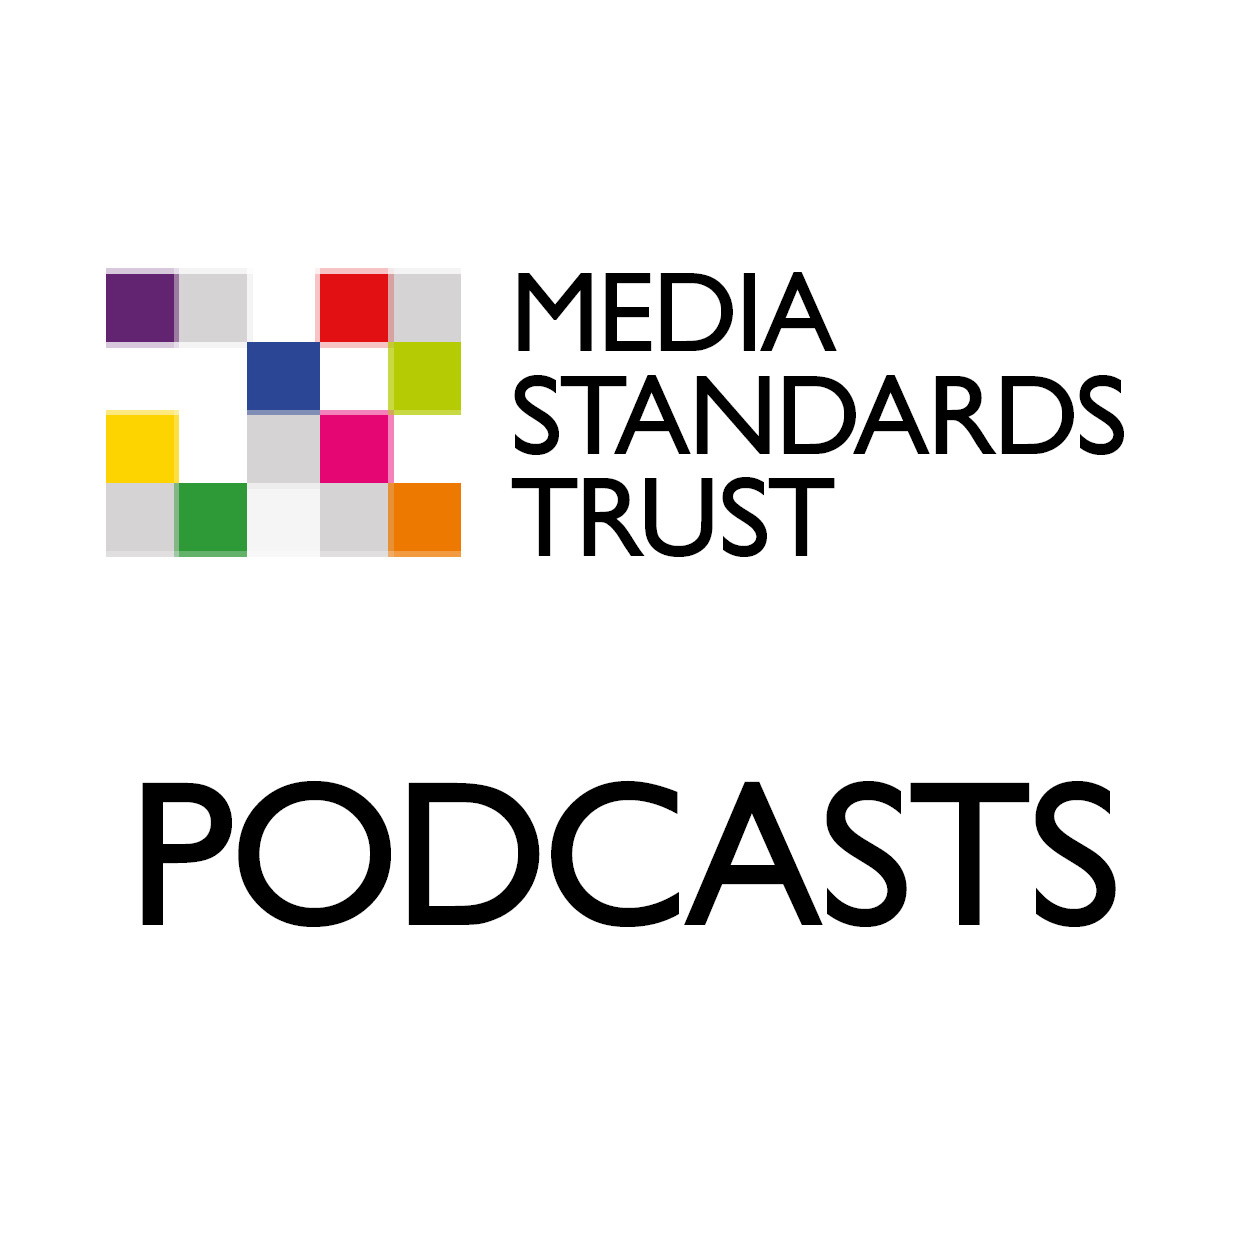 Media Standards Trust Podcasts